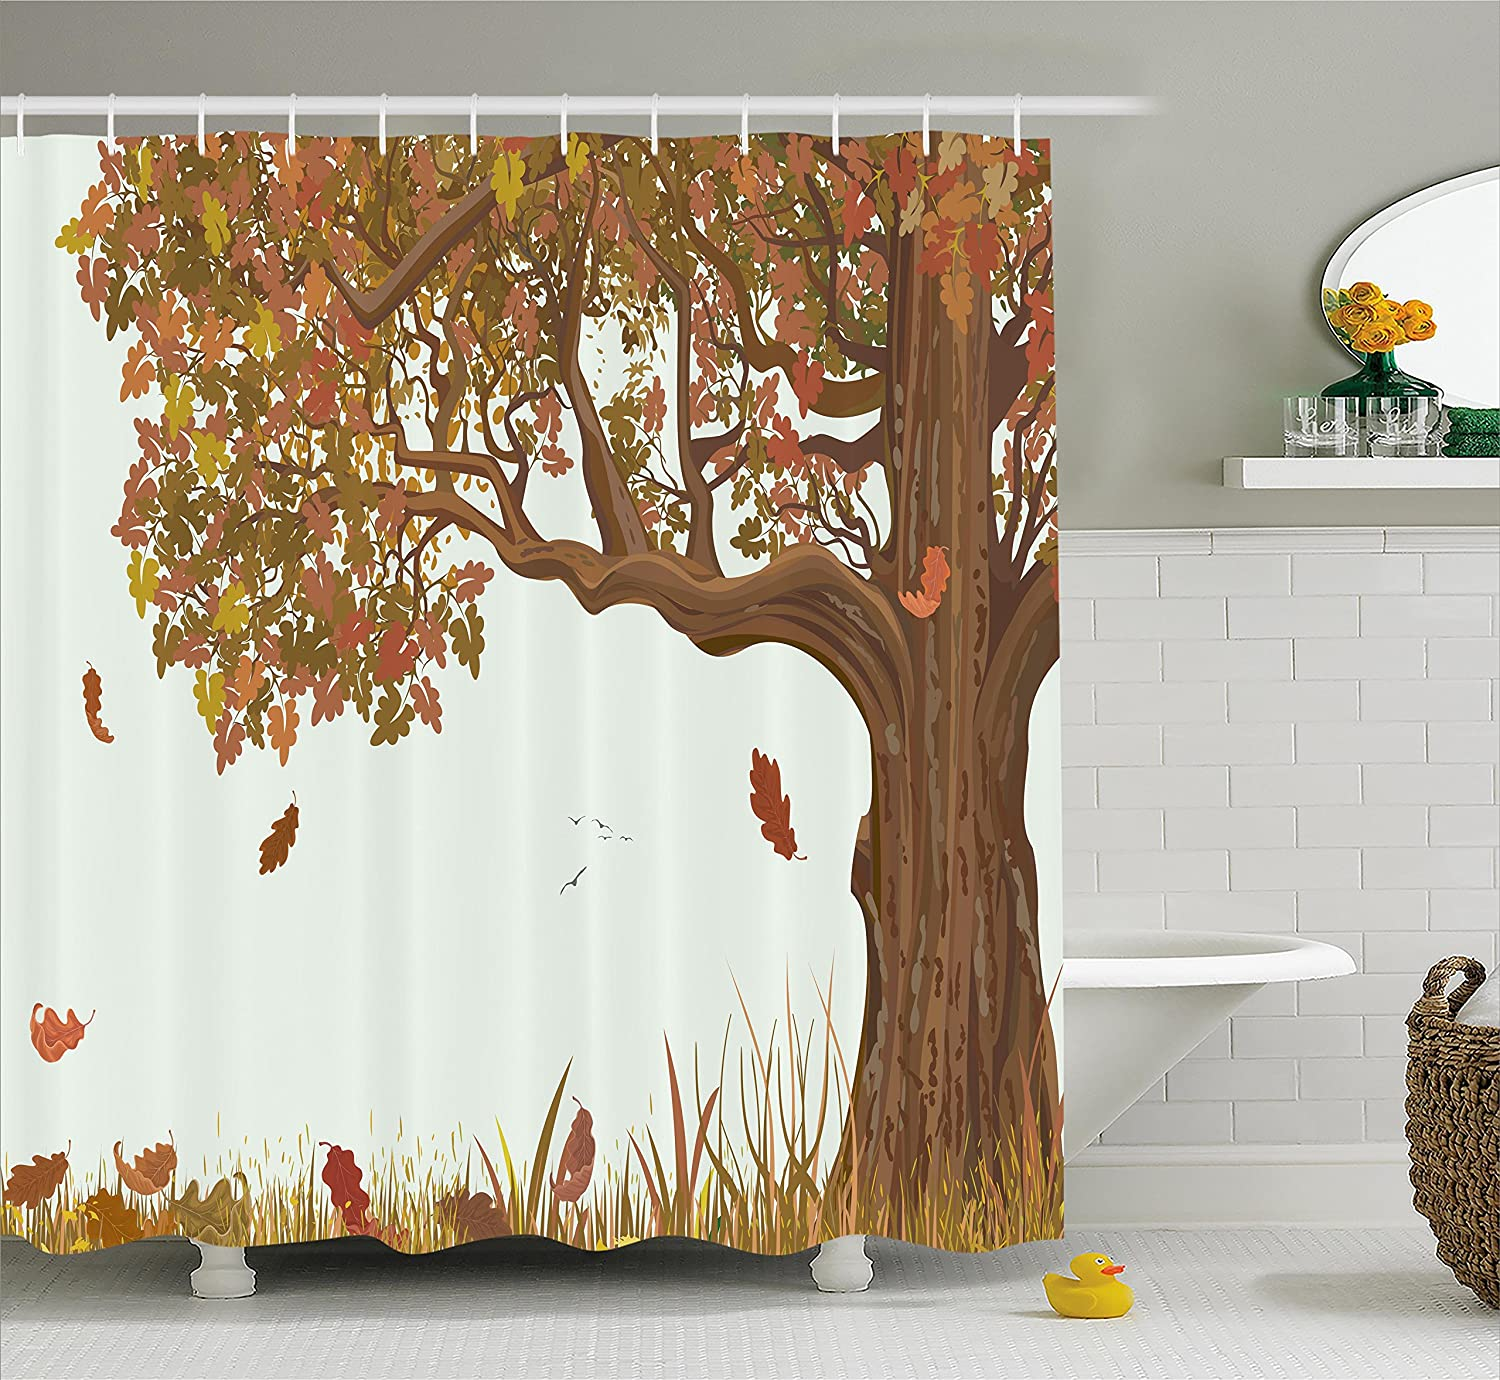 Ambesonne Tree of Life Shower Curtain, Autumn Season Fall Shady Deciduous Oak Leaves in Park Countryside Artwork, Fabric Bathroom Decor Set with Hooks, 70 Inches, Umber Redwood